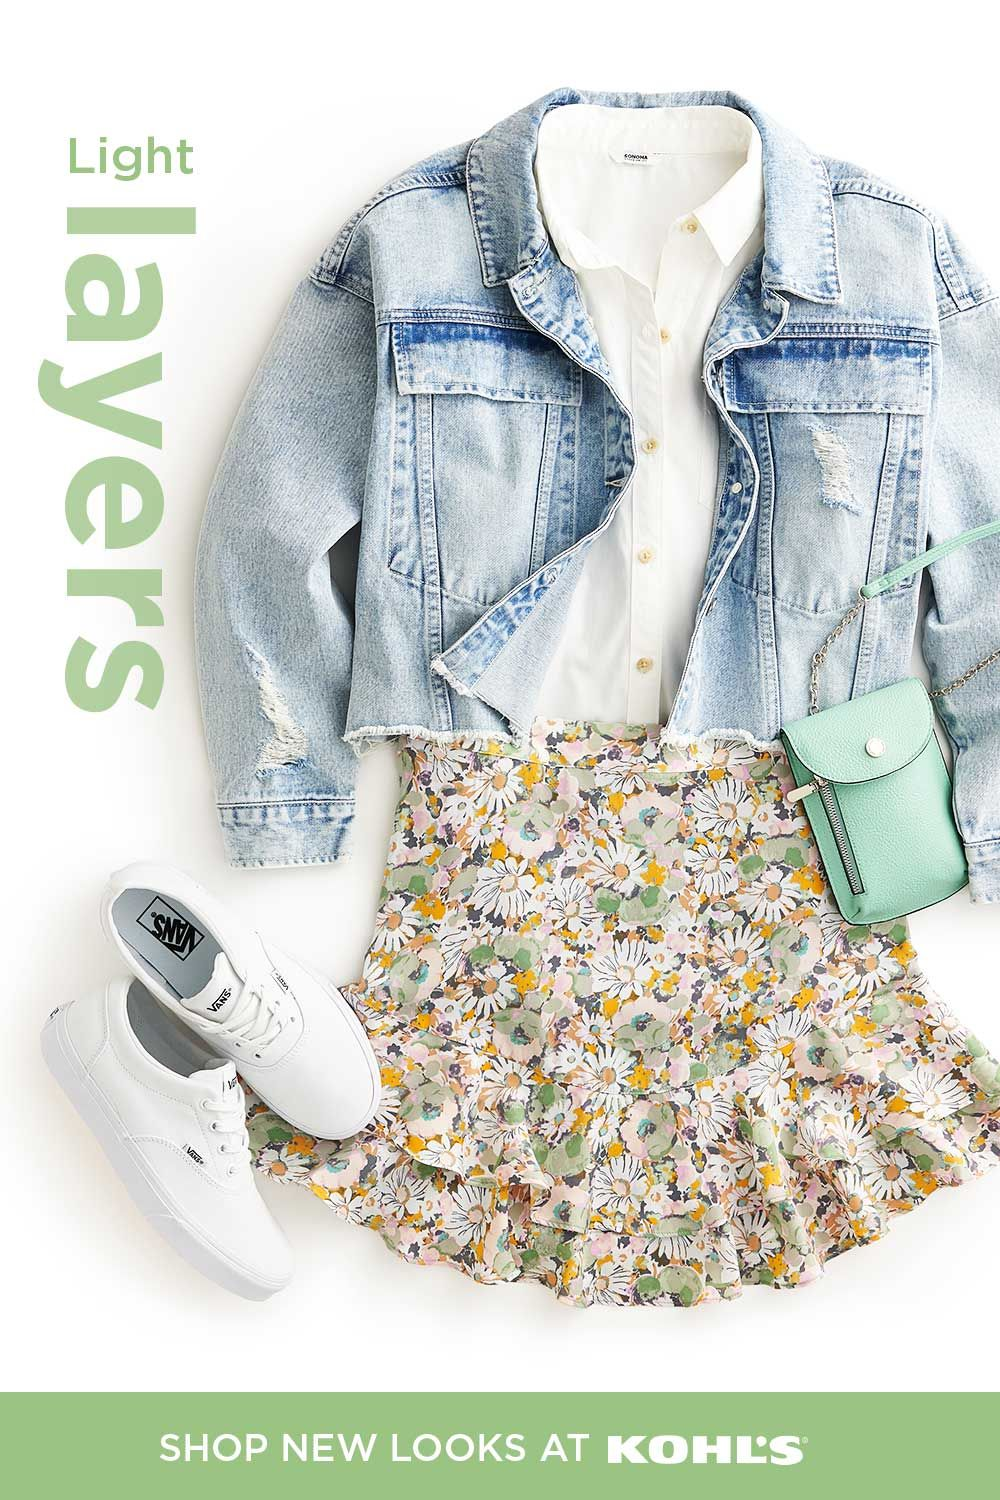 Upgrade your spring wardrobe with light layers that'll last you all season long. Tuck a white button-down into a cute floral skirt. Throw on a cropped denim jacket for some extra warmth and style. Then finish the look with a pair of sneakers and a cute mint crossbody. Shop LC Lauren Conrad, Apt. 9 and more at Kohl's and Kohls.com. #springstyle #ootd